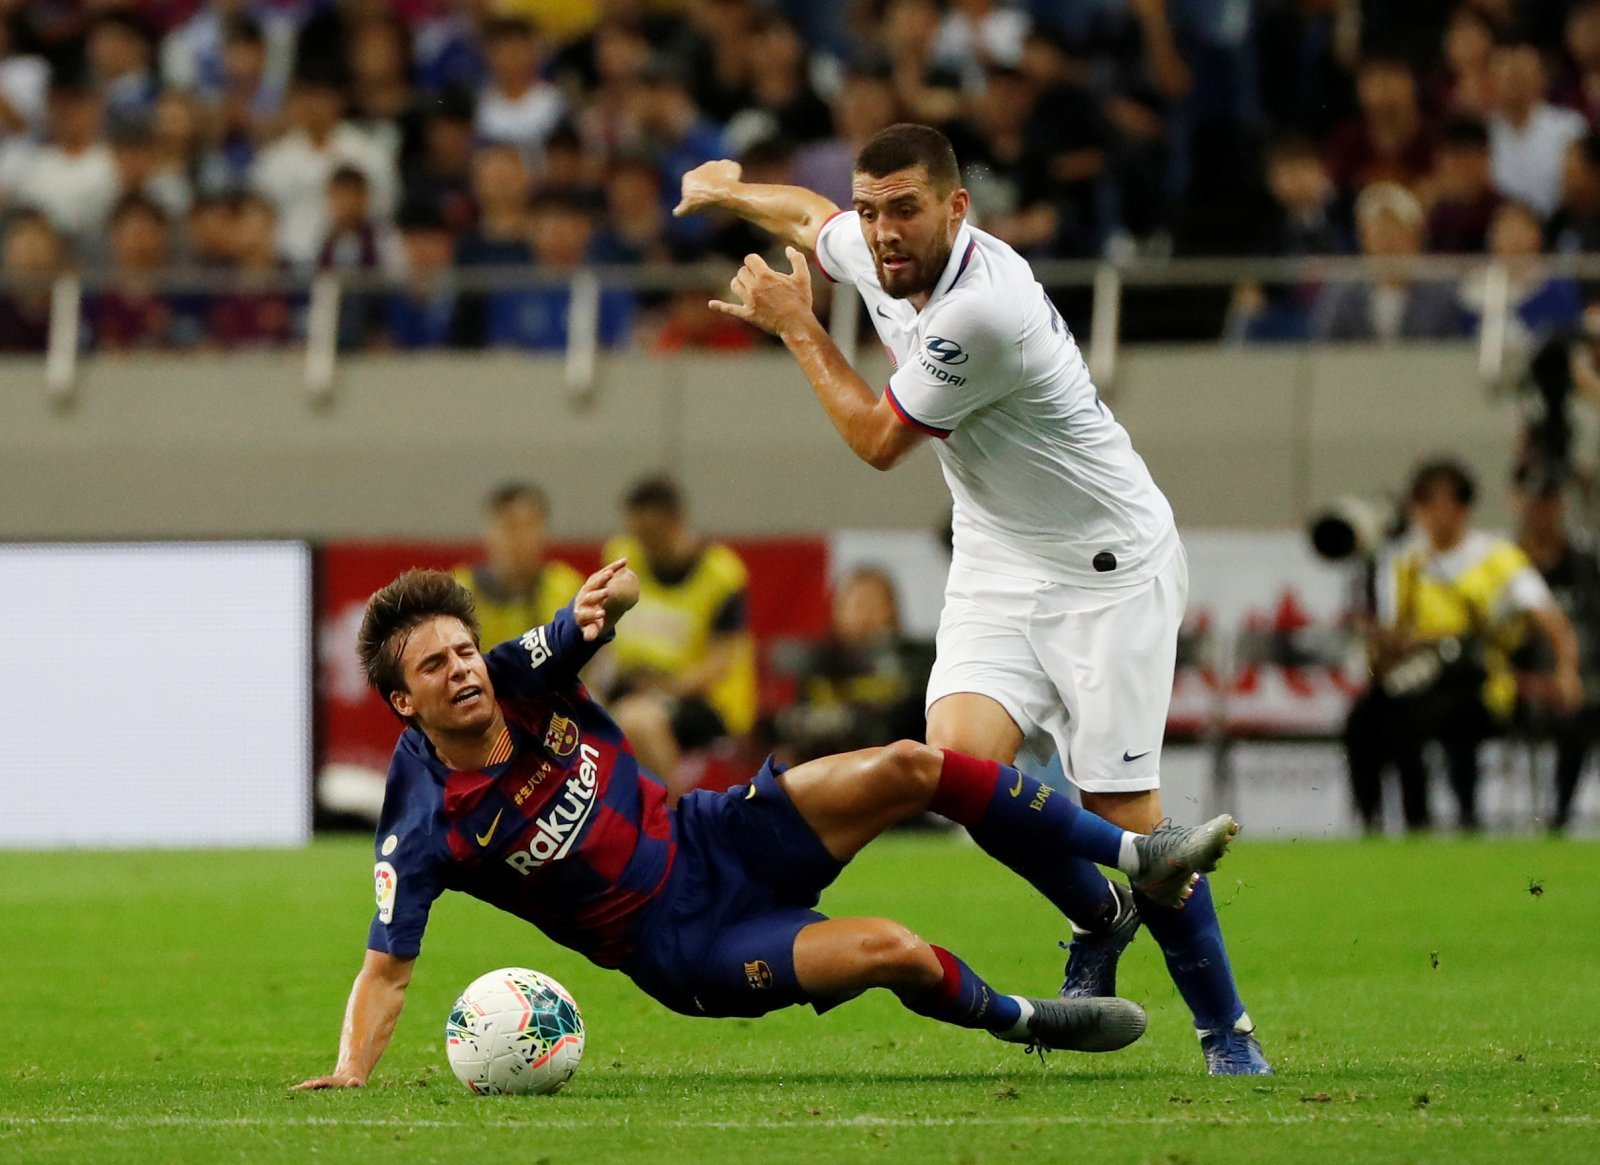 Tottenham: Barcelona youngster Riqui Puig turned down summer move to Spurs